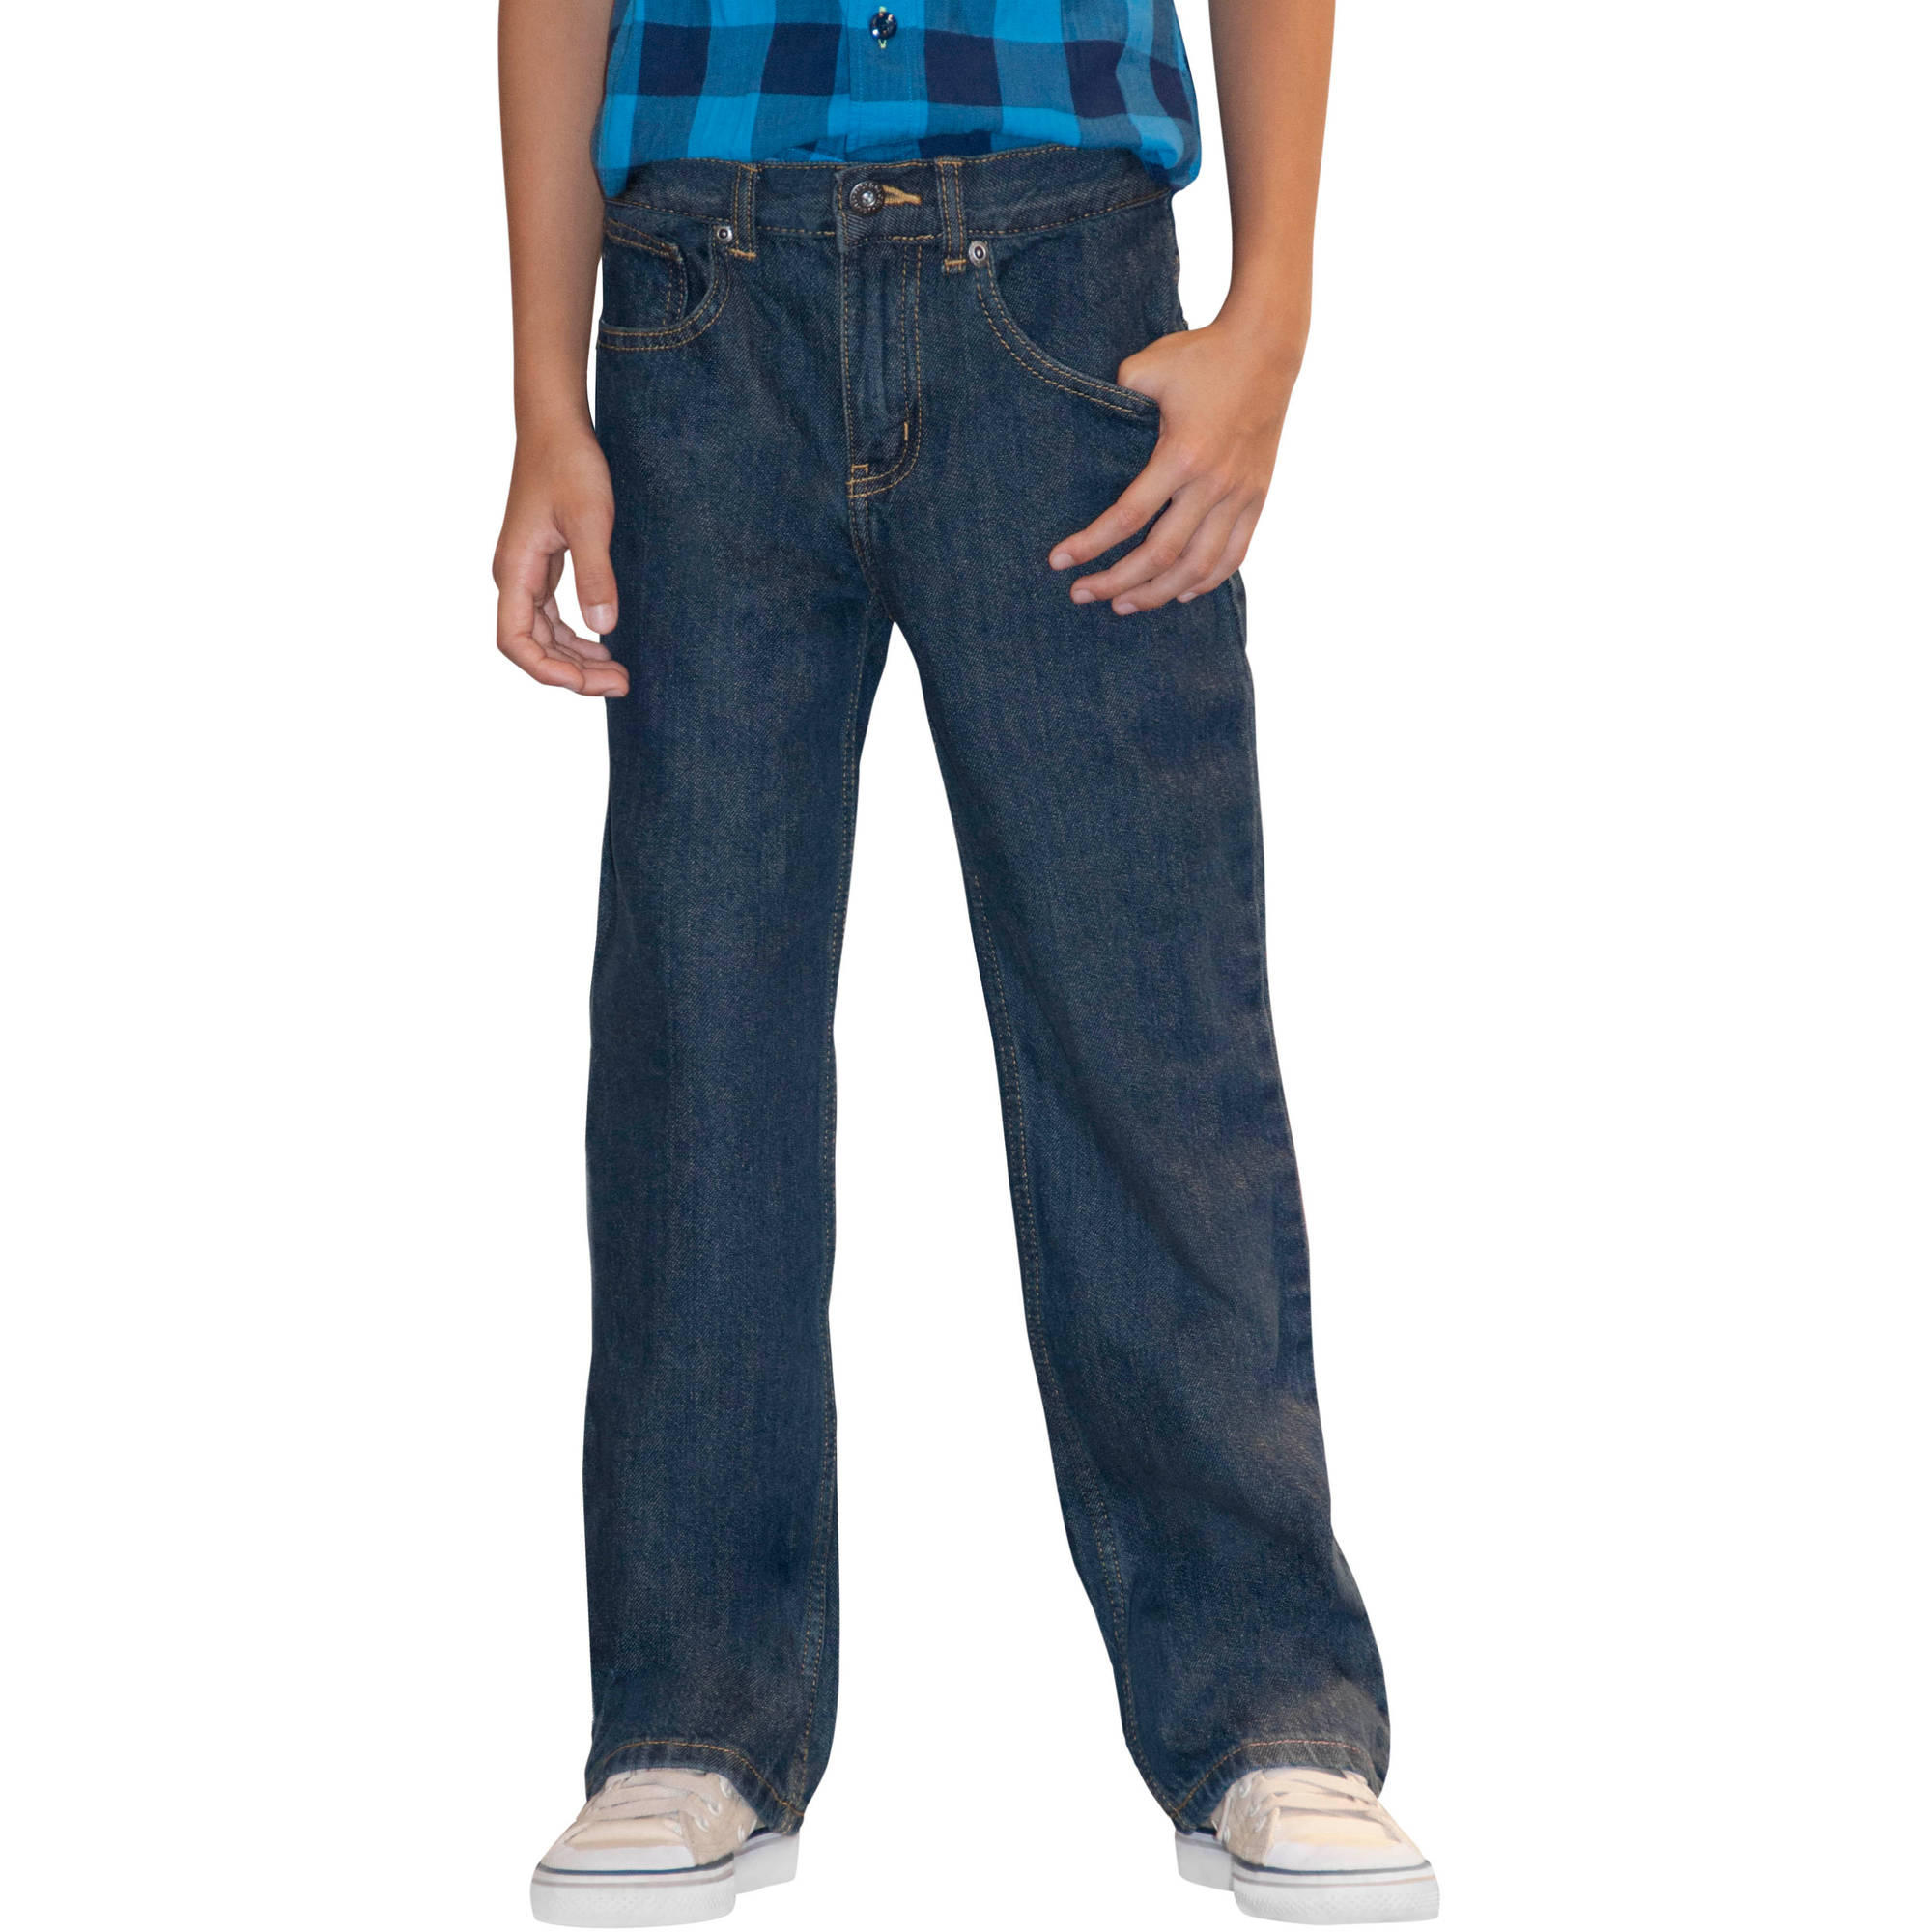 Faded Glory Husky Boys' Relaxed Jeans